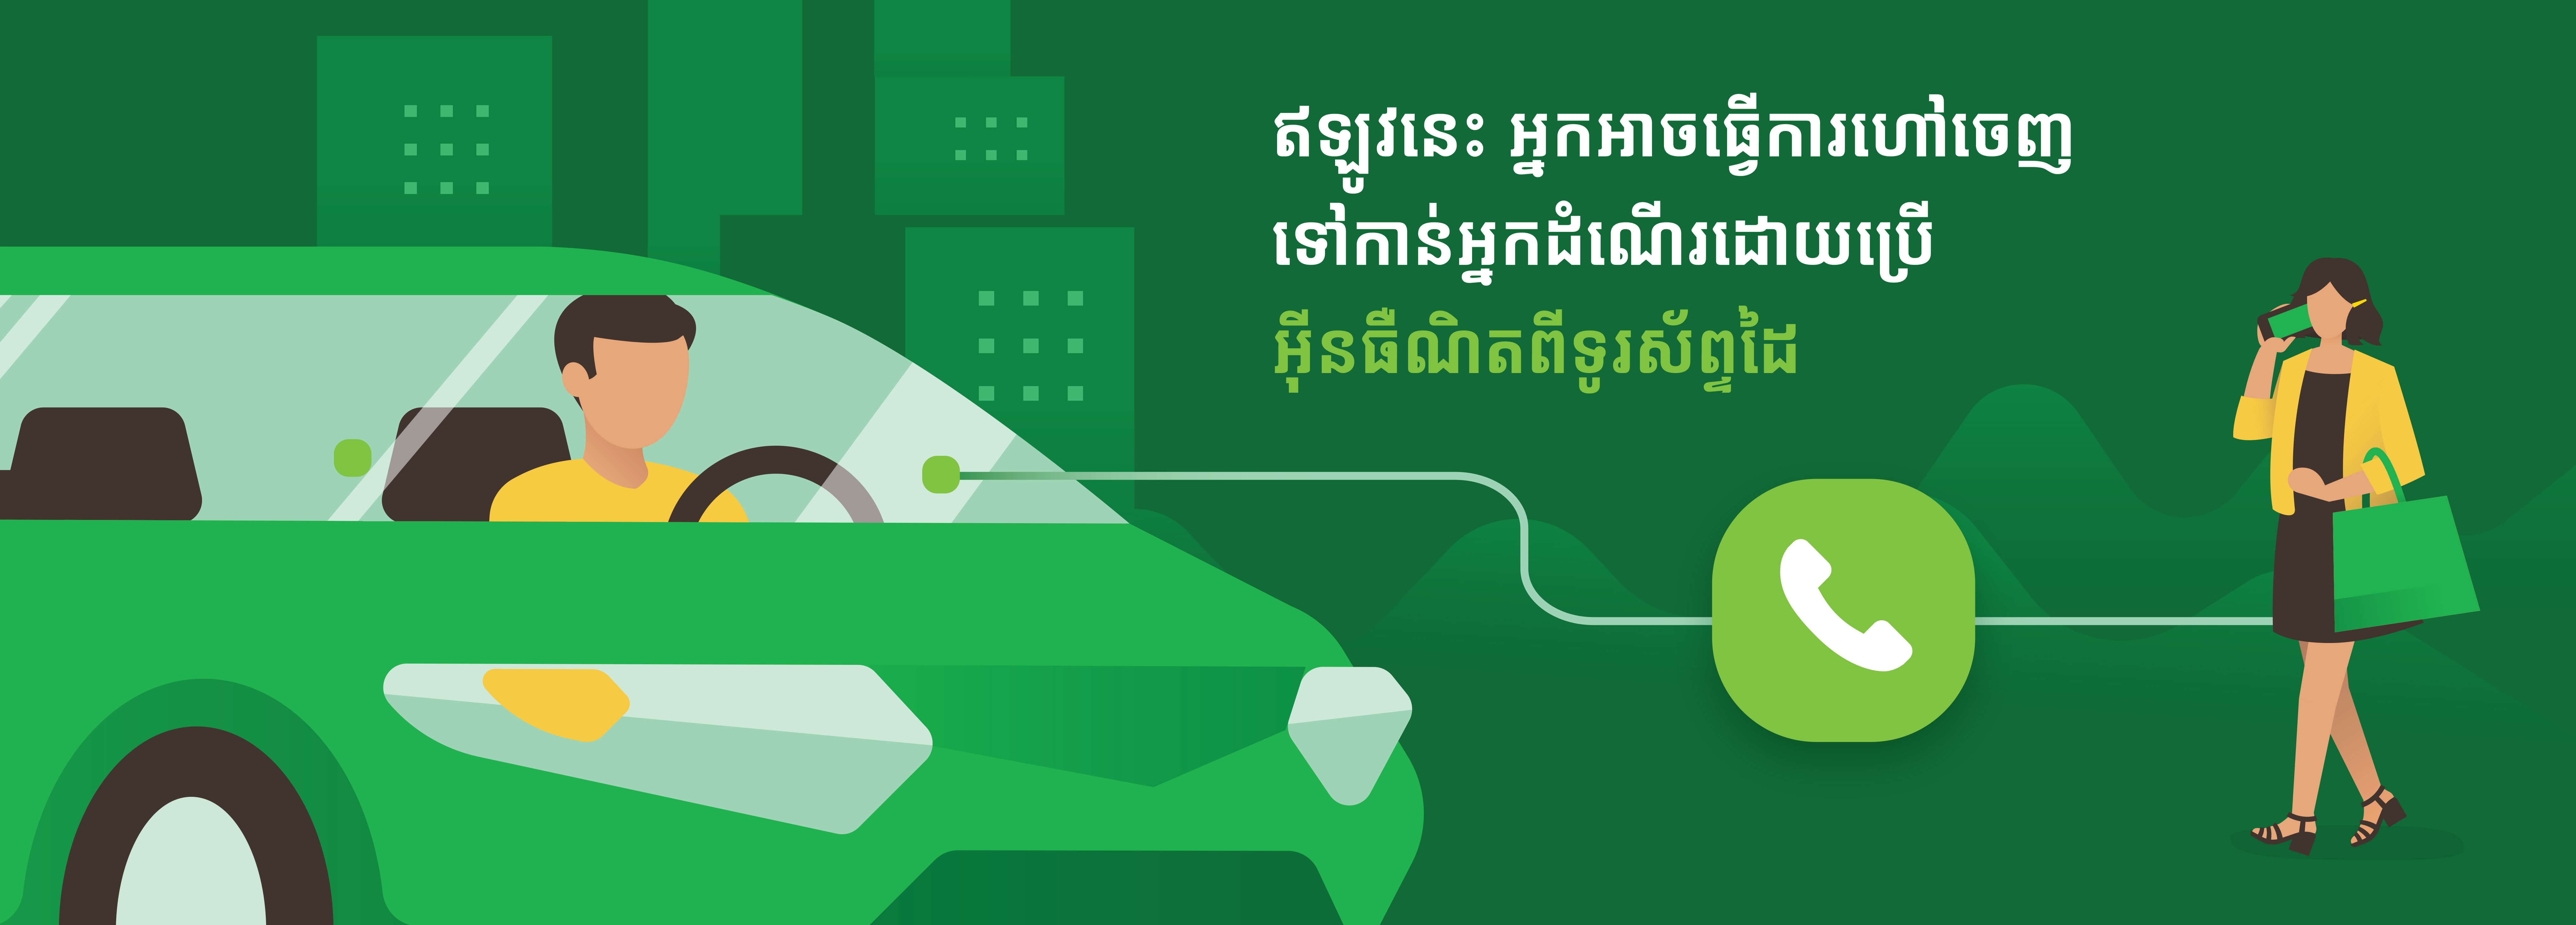 How To Make A Call To Your Grab Passengers With Your Mobile Data Grab Kh